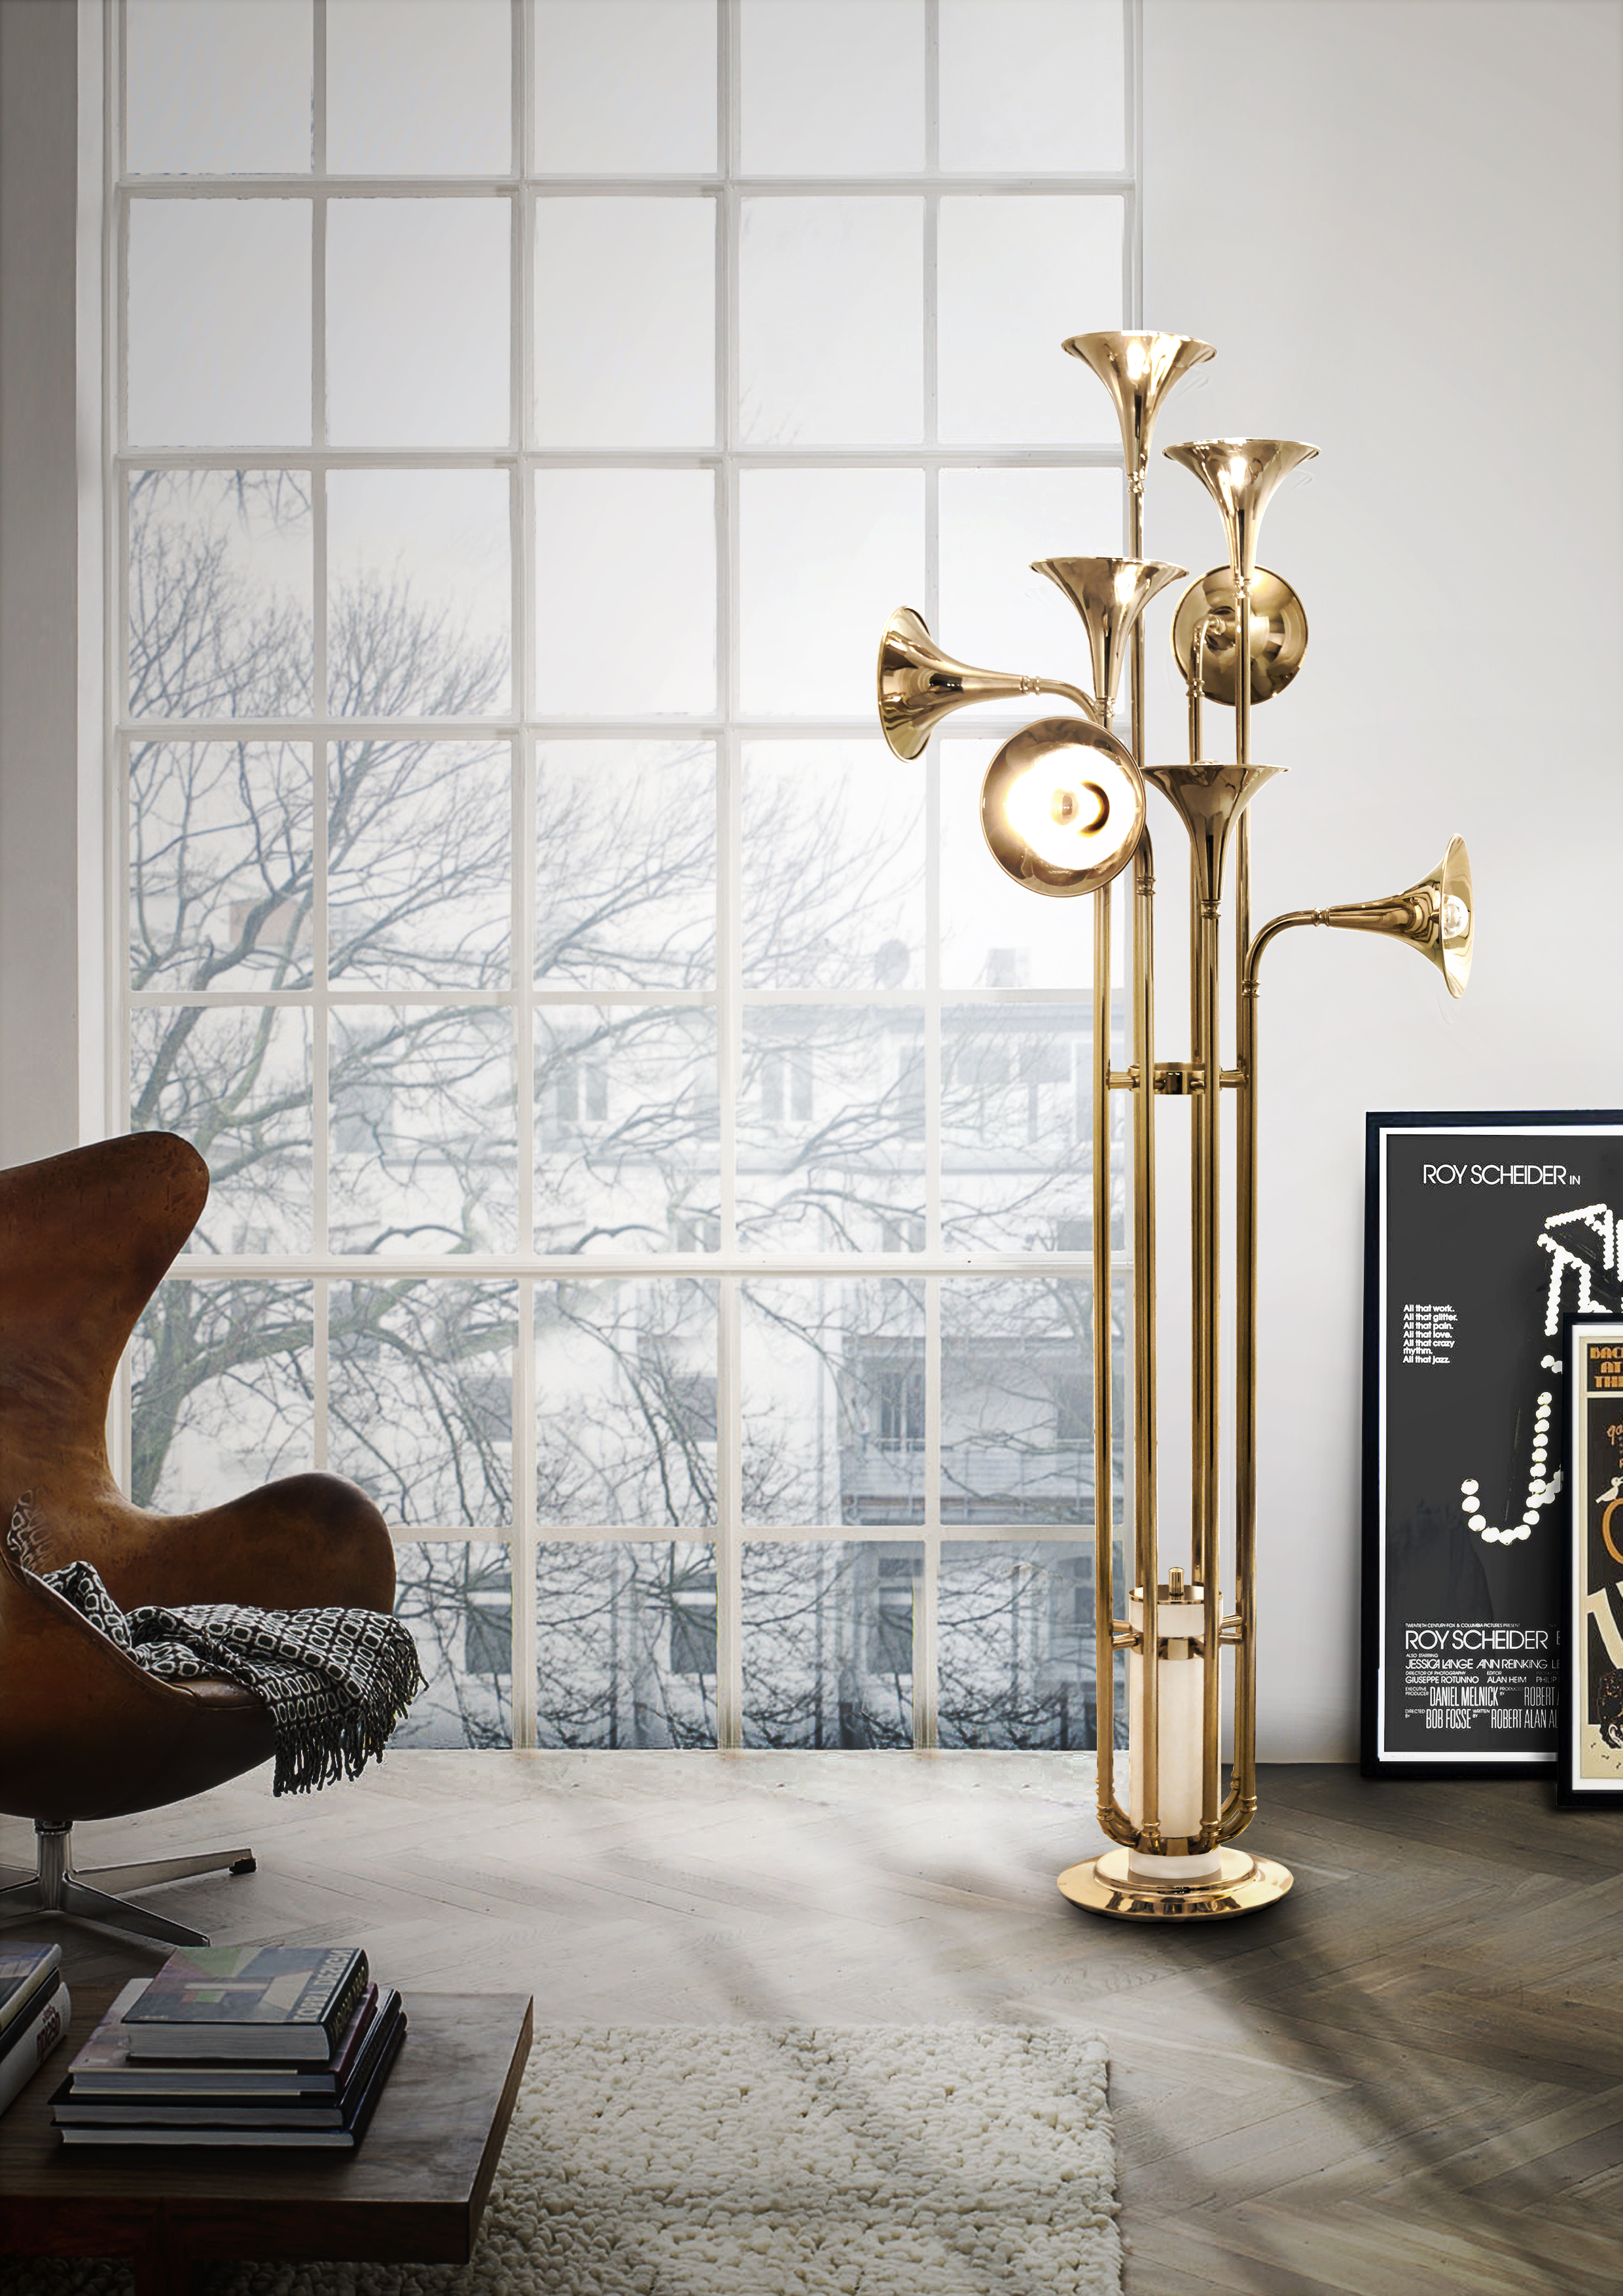 4 Modern Floor Lamps To Be Seen At 100% Design!